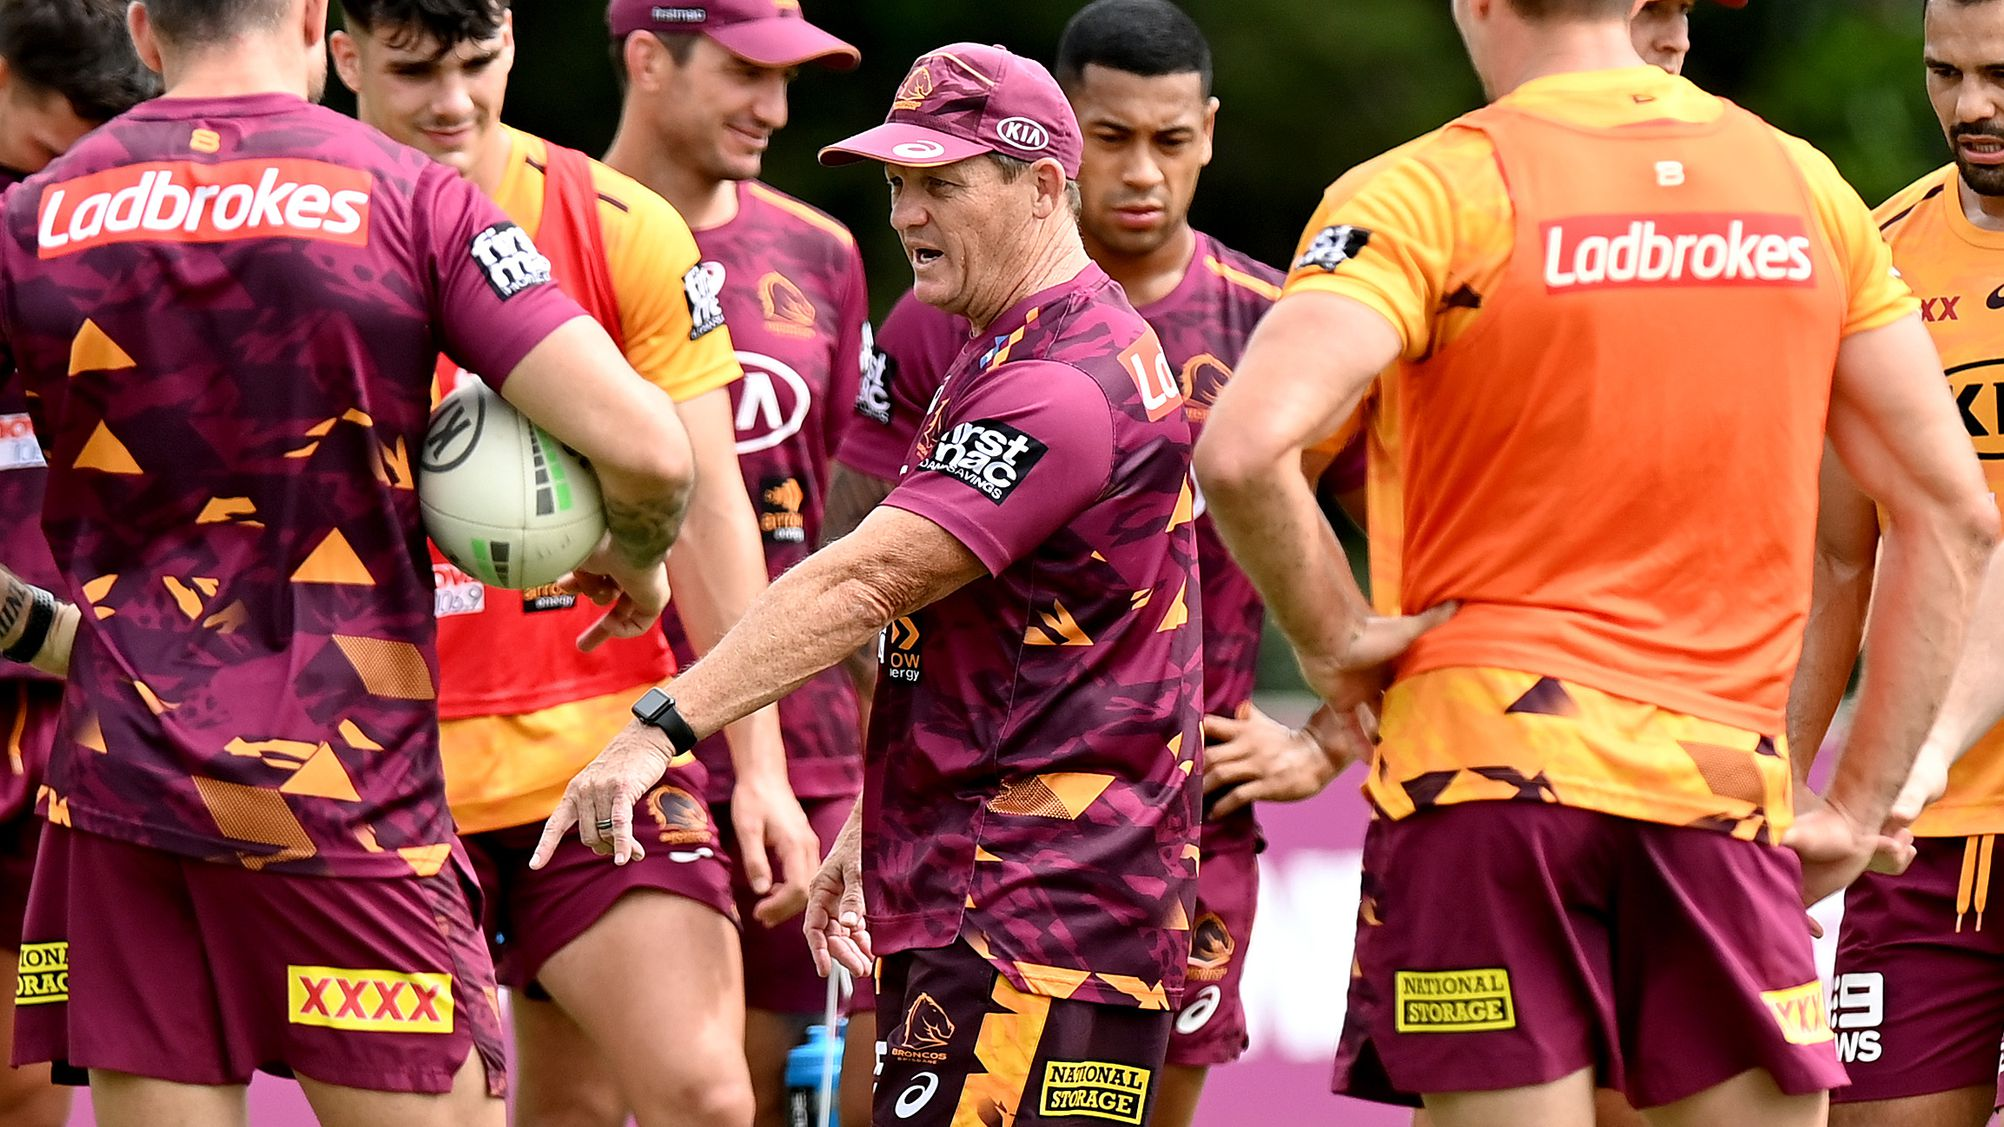 Coach Kevin Walters instructs the players during a Brisbane Broncos NRL training session.